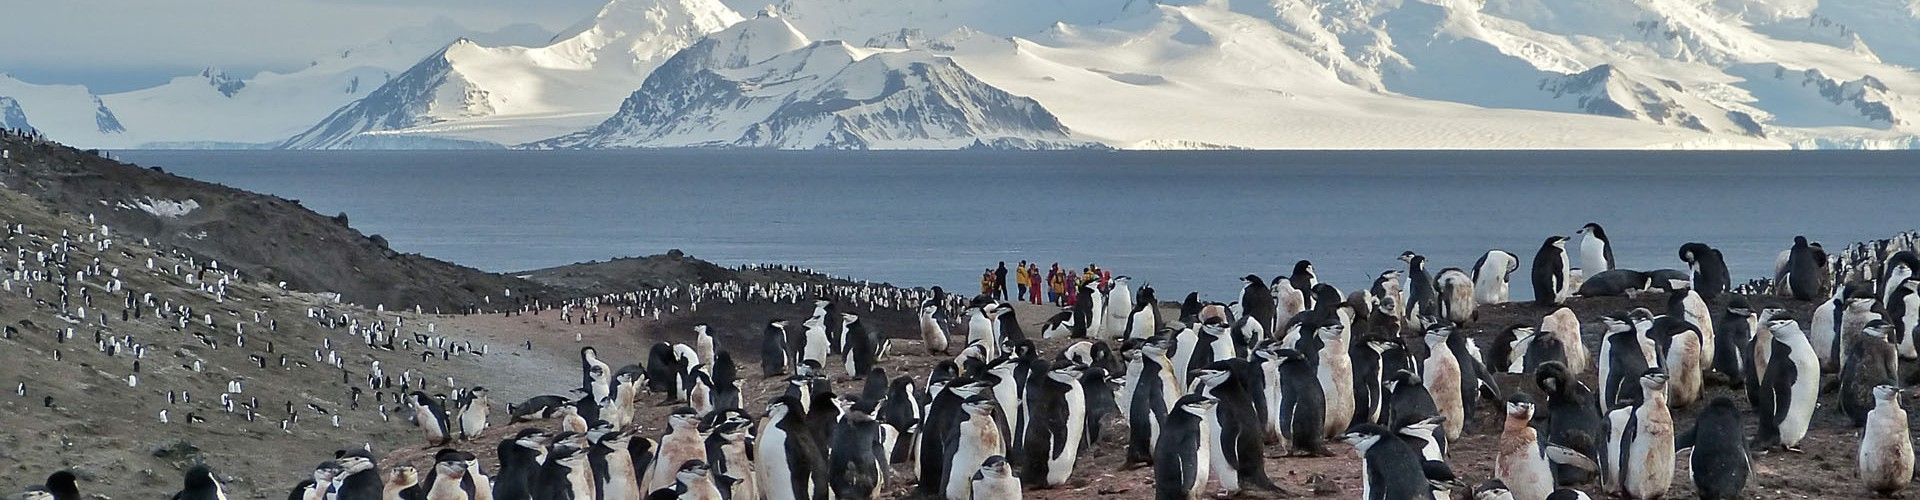 Antarctica - Peninsula - Hebridean Sky - Chinstrap colony with icebergs sunset